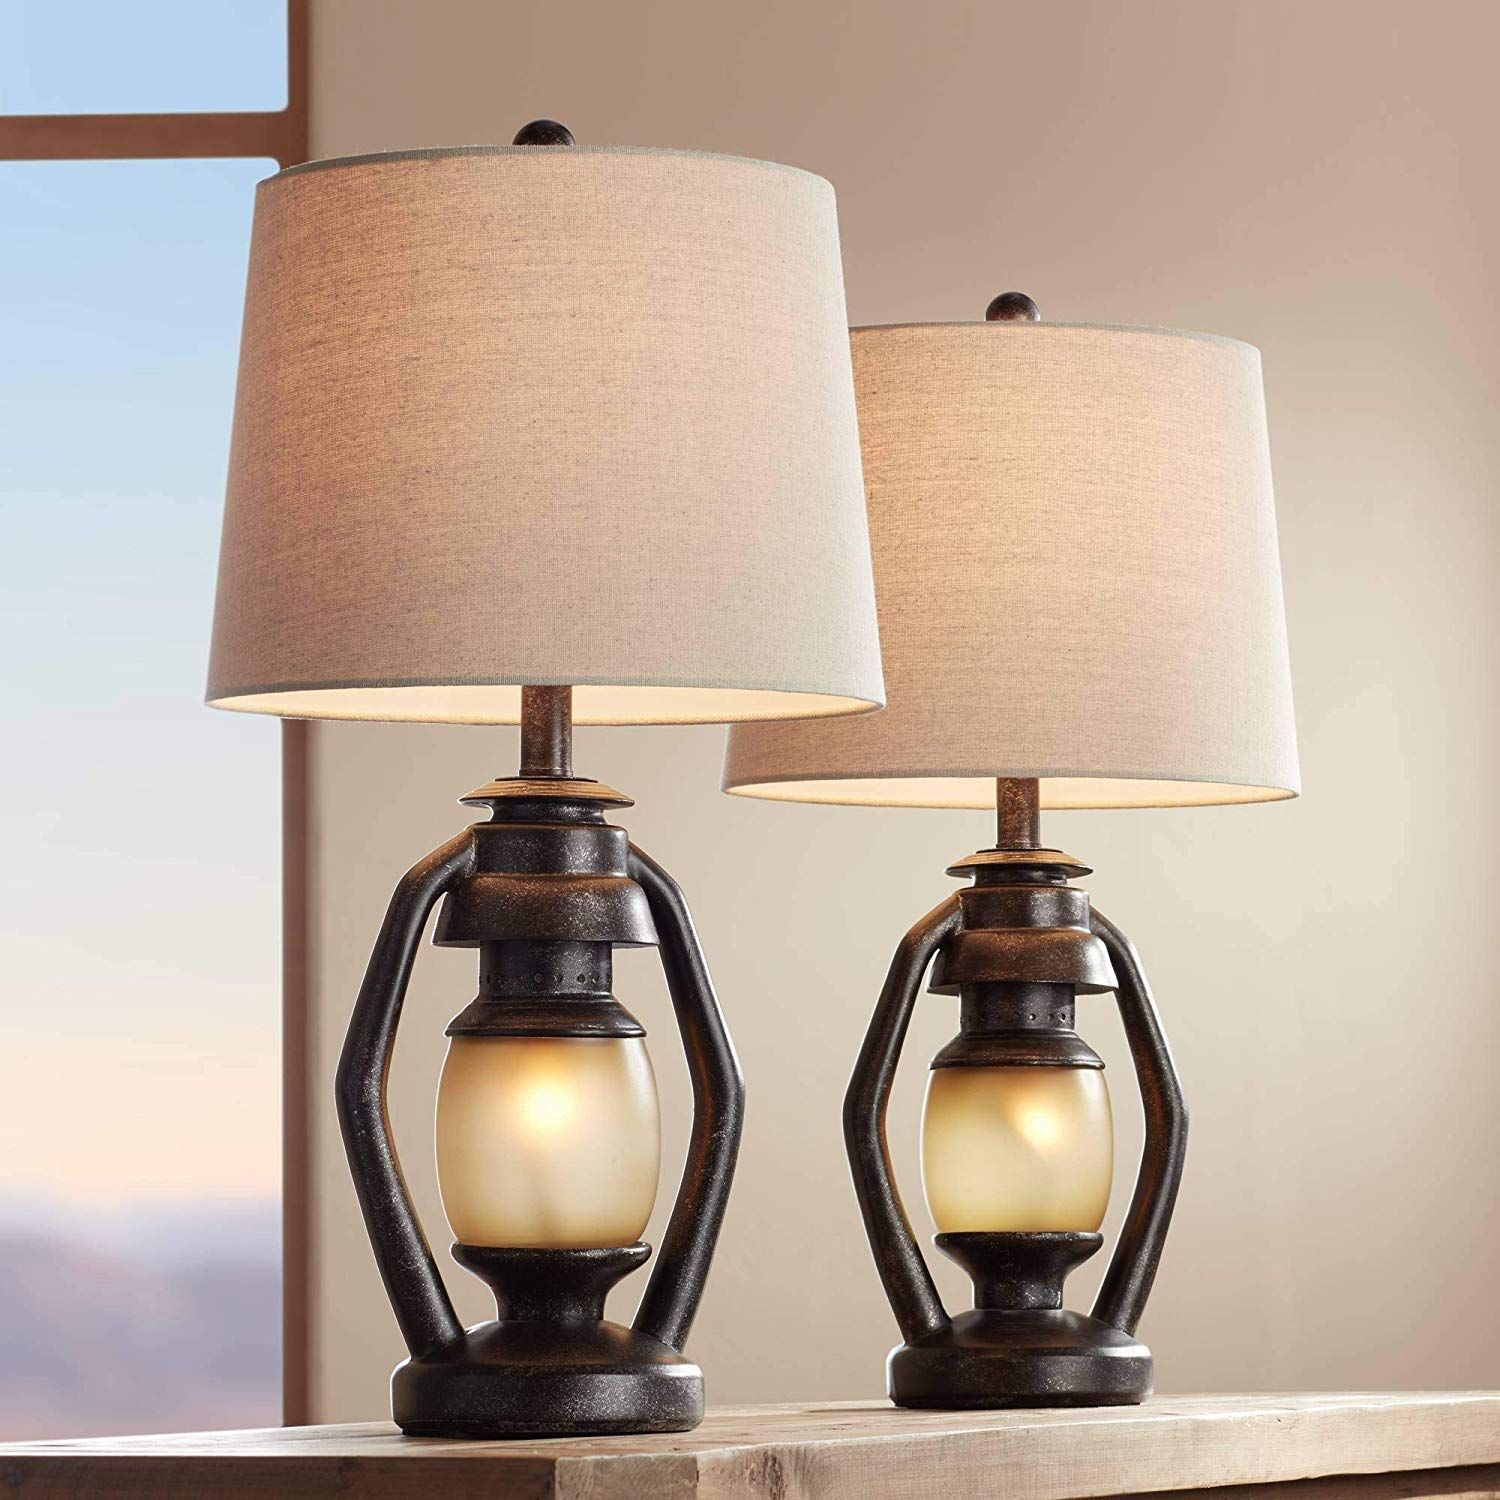 Horace Rustic Farmhouse Table Lamps Set Of 2 With Nightlight Miner